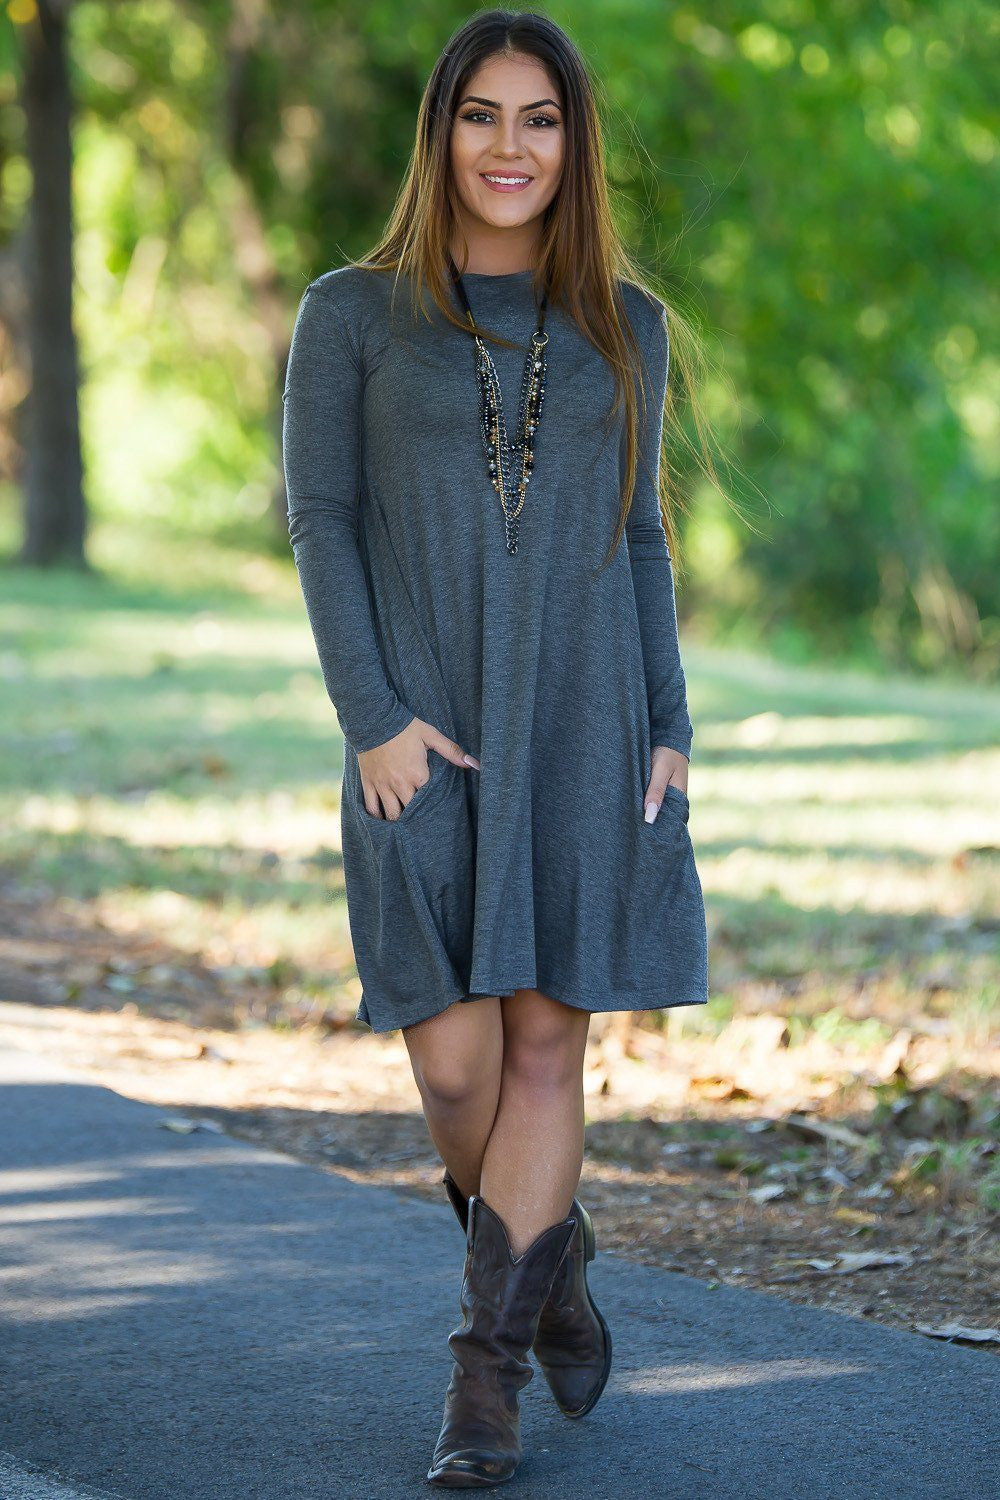 Piko Long Sleeve Swing Dress - Dark Heather Grey - Piko Clothing